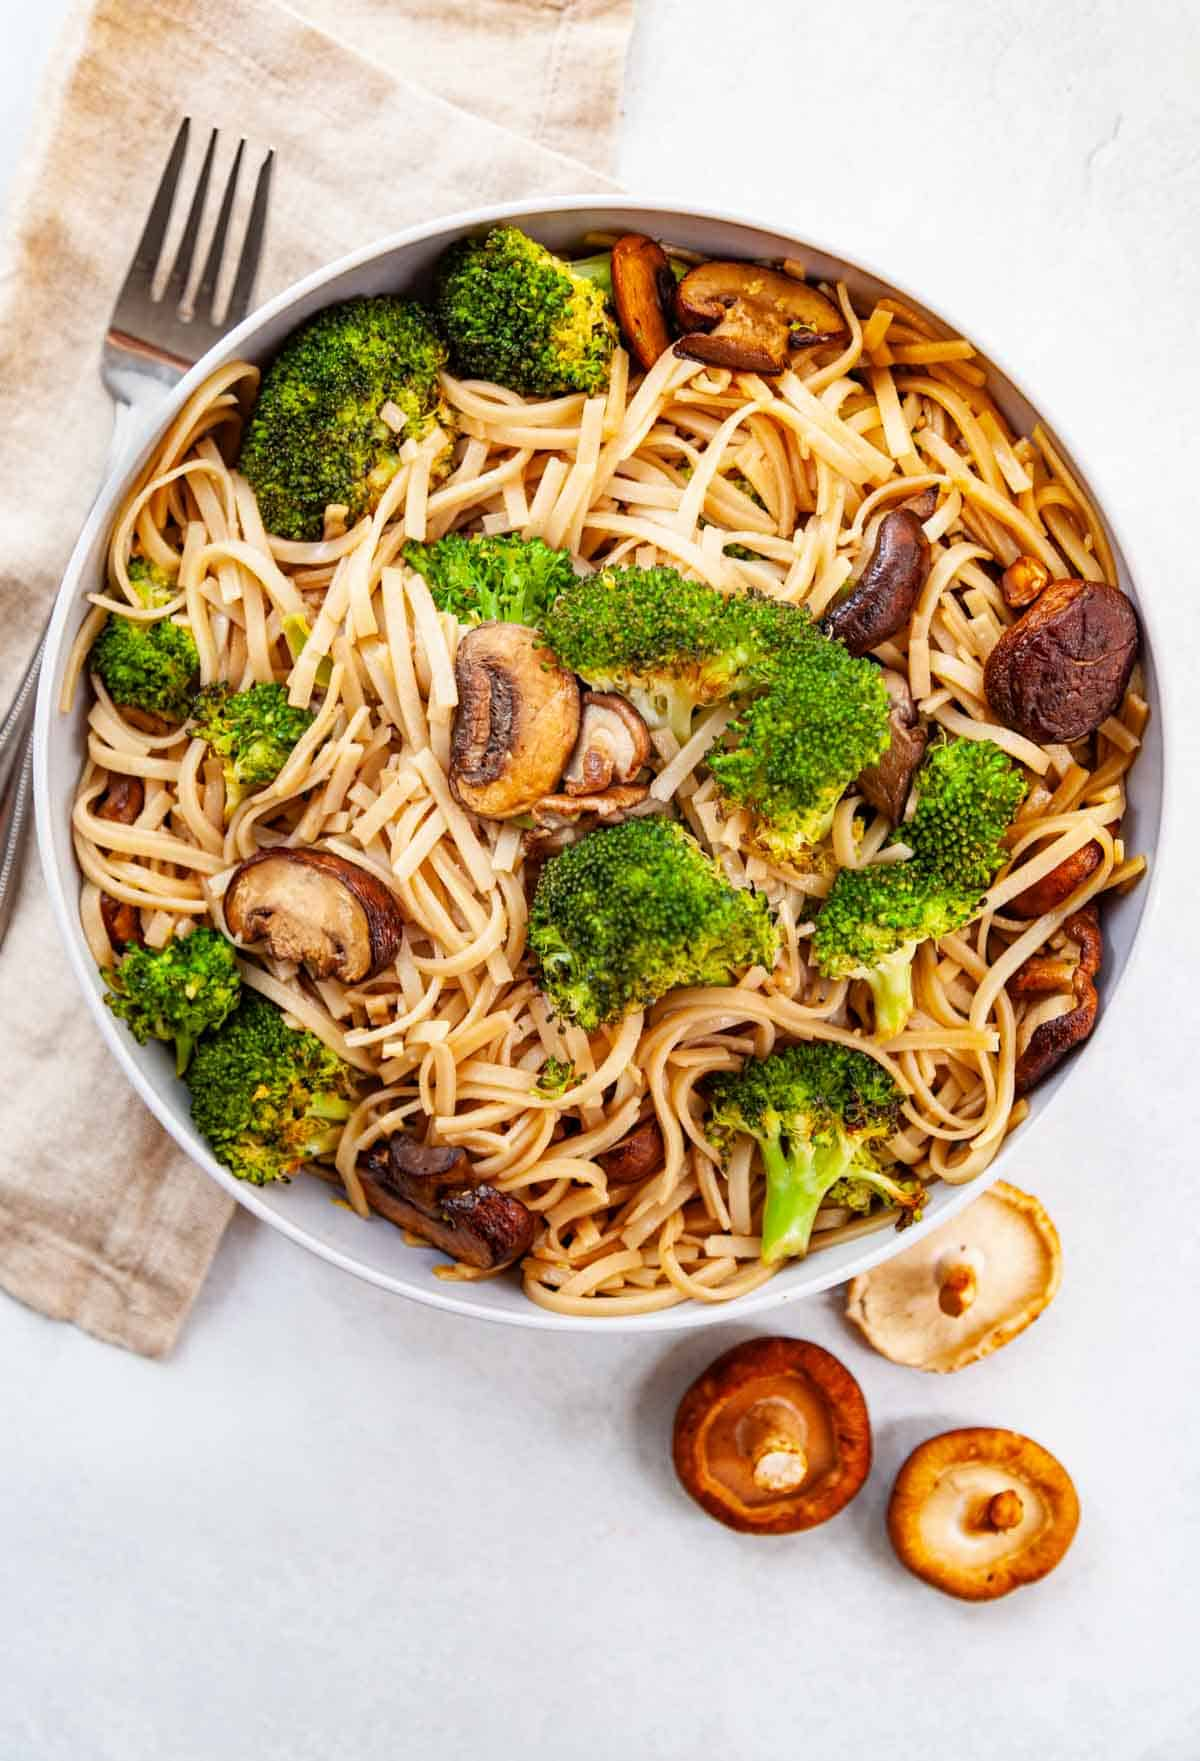 bowl of stir-fried brown rice noodles with roasted broccoli and mushrooms